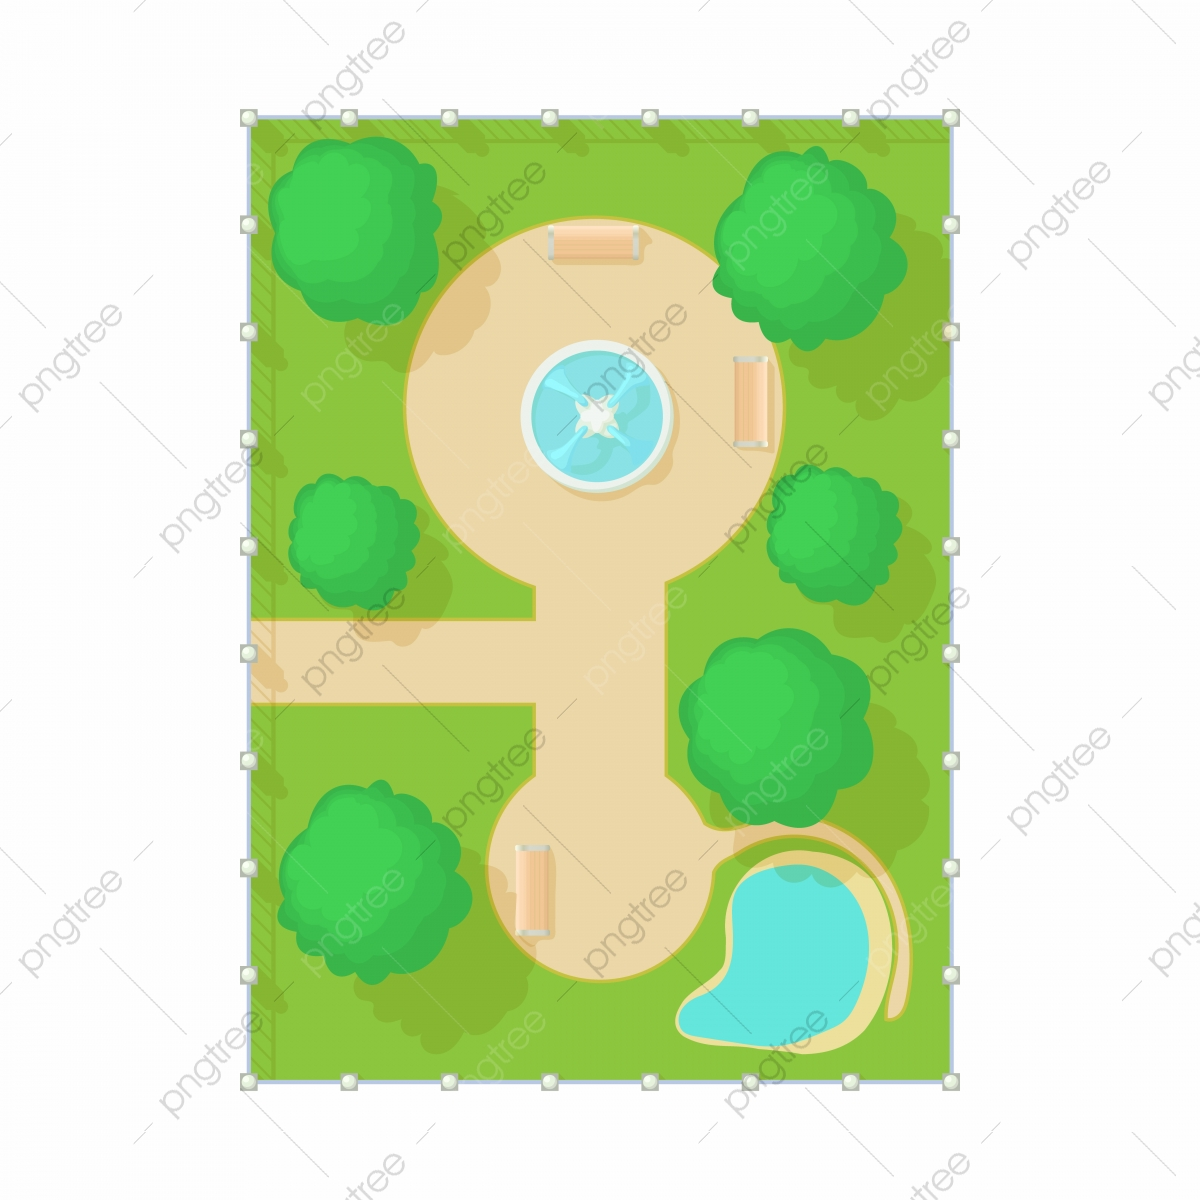 Top View Of Park With Fountain Icon Cartoon Style Style Icons Cartoon Icons View Icons Png And Vector With Transparent Background For Free Download Free for commercial use no attribution required high quality images. https pngtree com freepng top view of park with fountain icon cartoon style 5088931 html